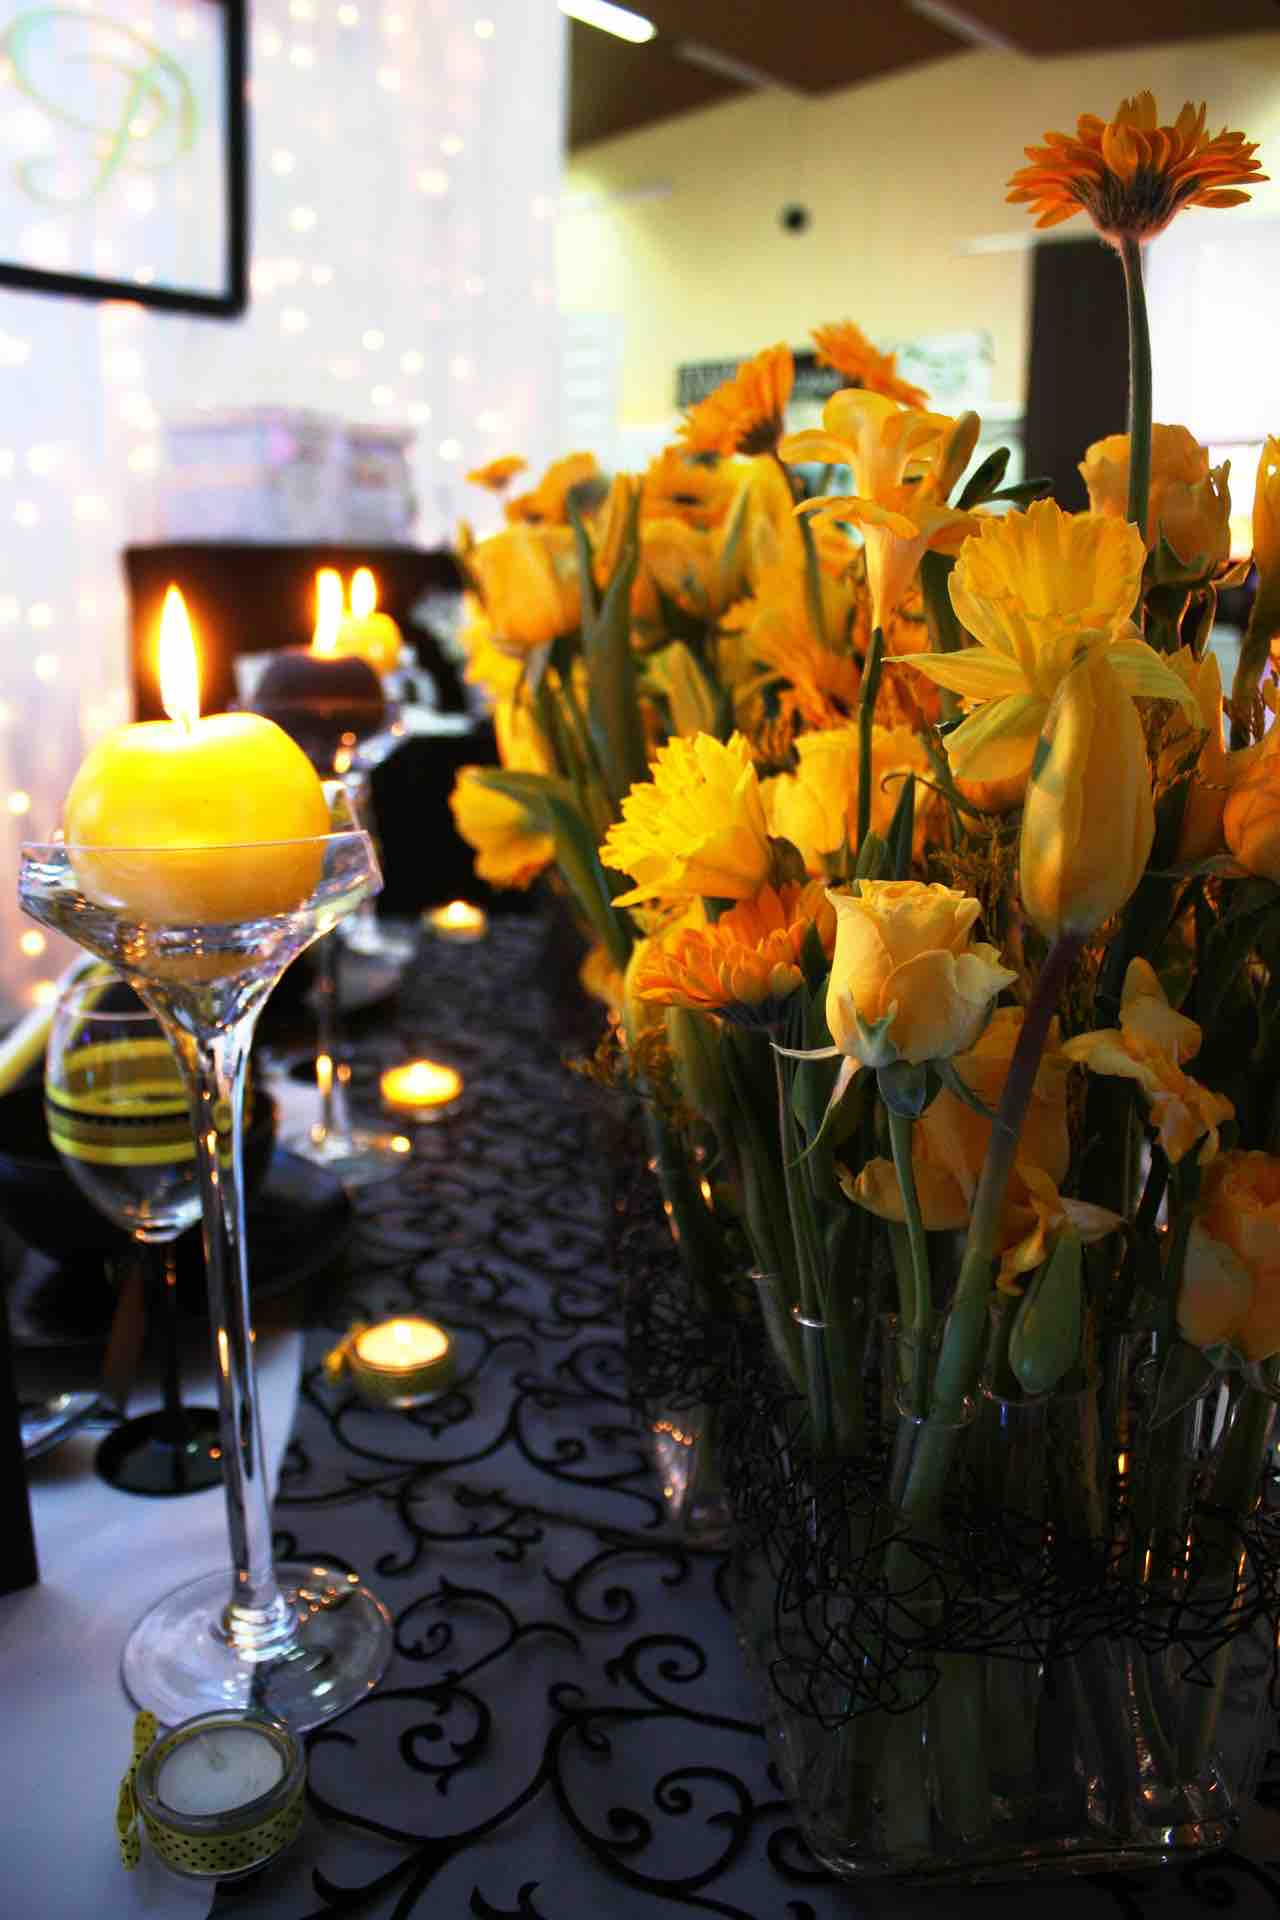 Easter Daffodils dinner party